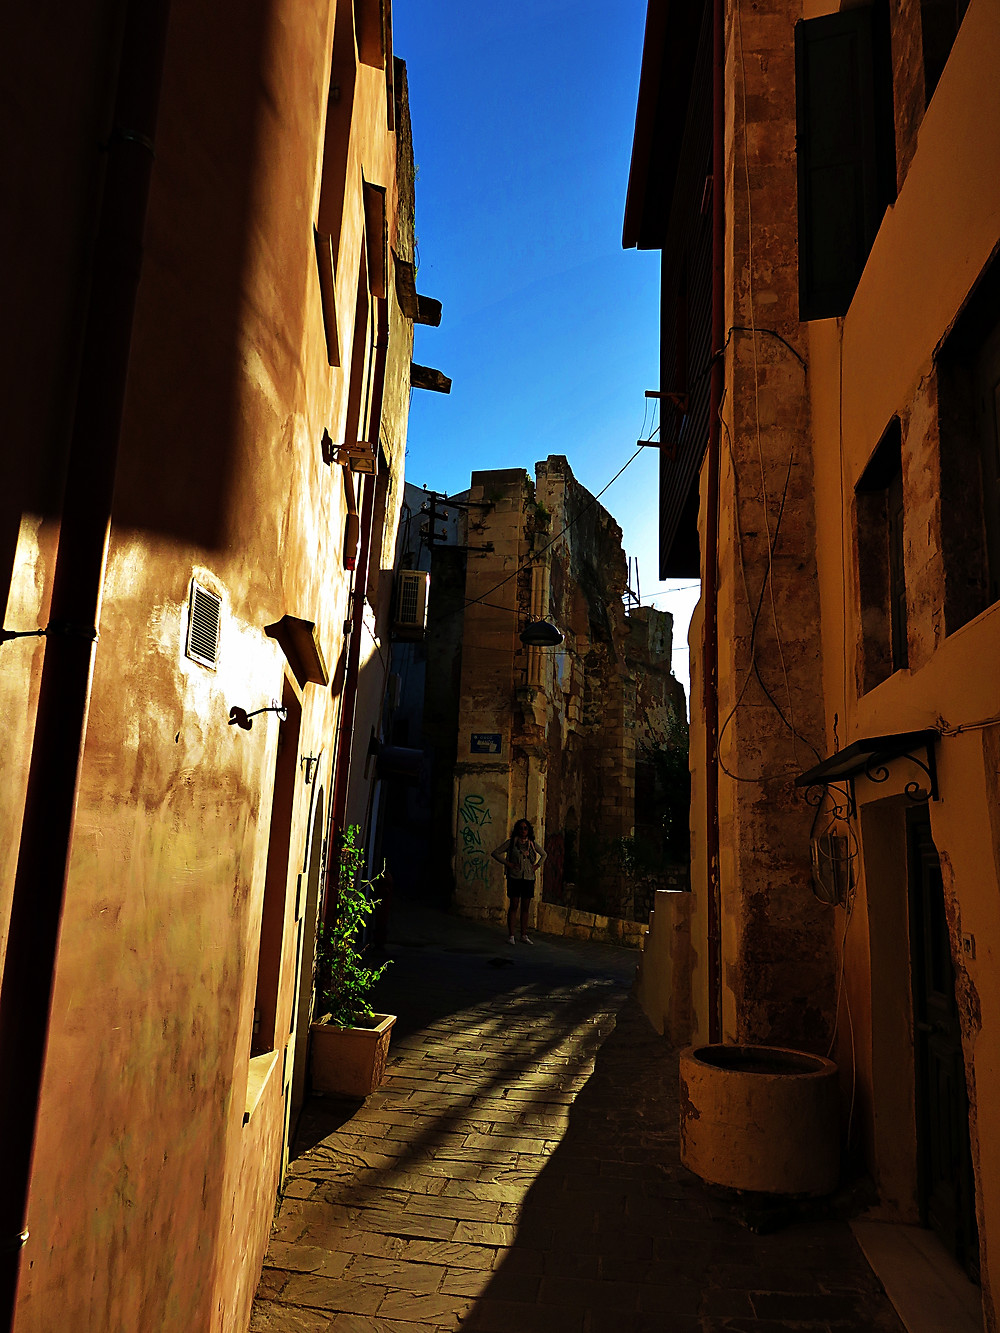 Back streets of Chania, north west Crete